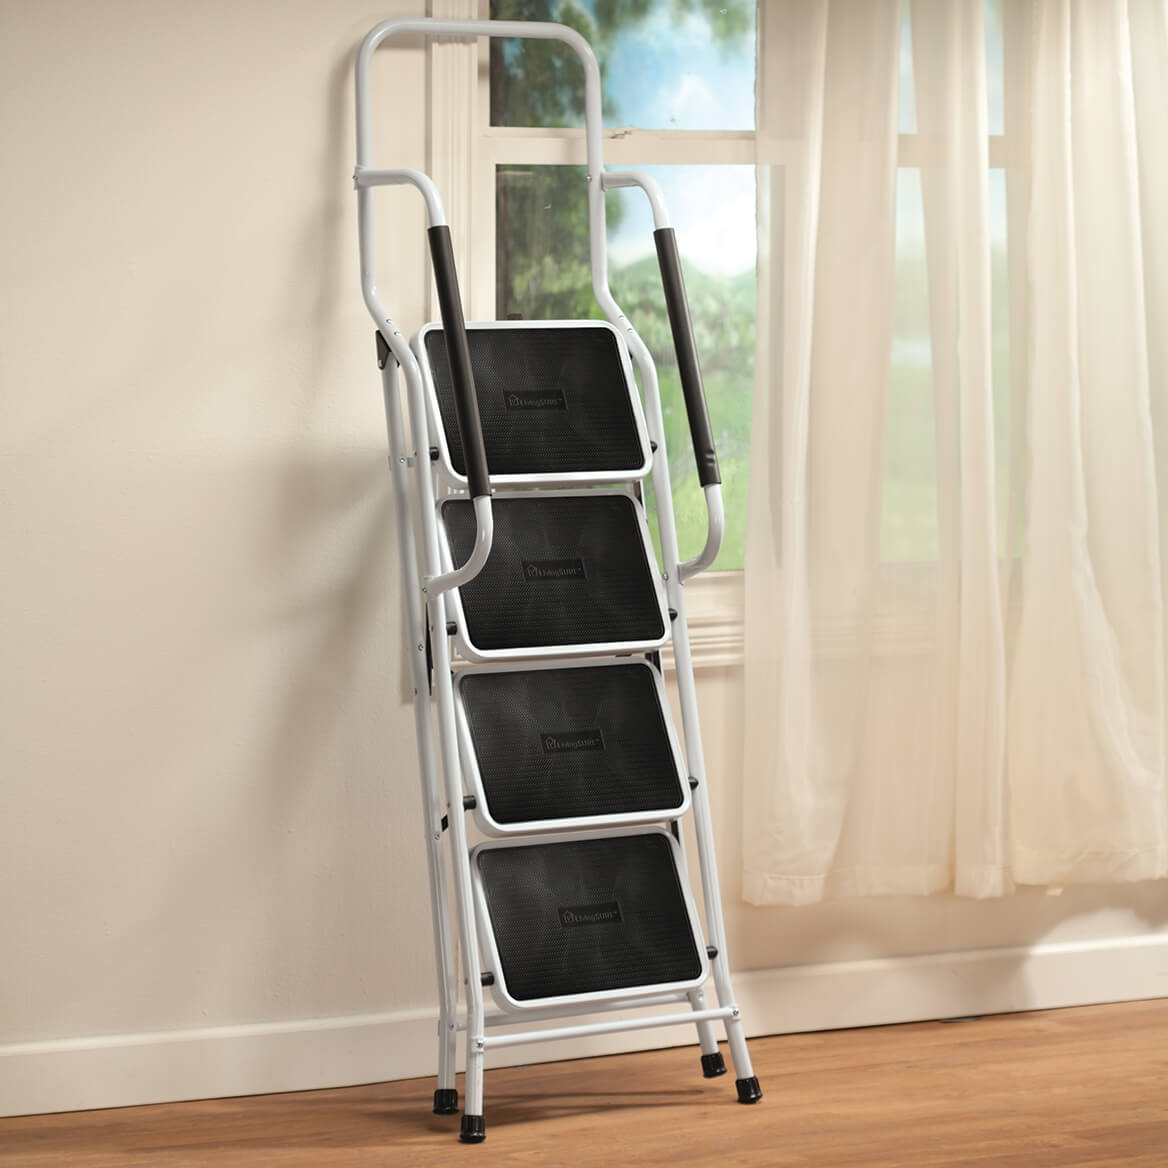 Folding 4 Step Ladder With Handrail And Side Rails   Folding Stairs With Handrails   Elderly   Hydraulic   Hand Rail   Aluminum   Interior